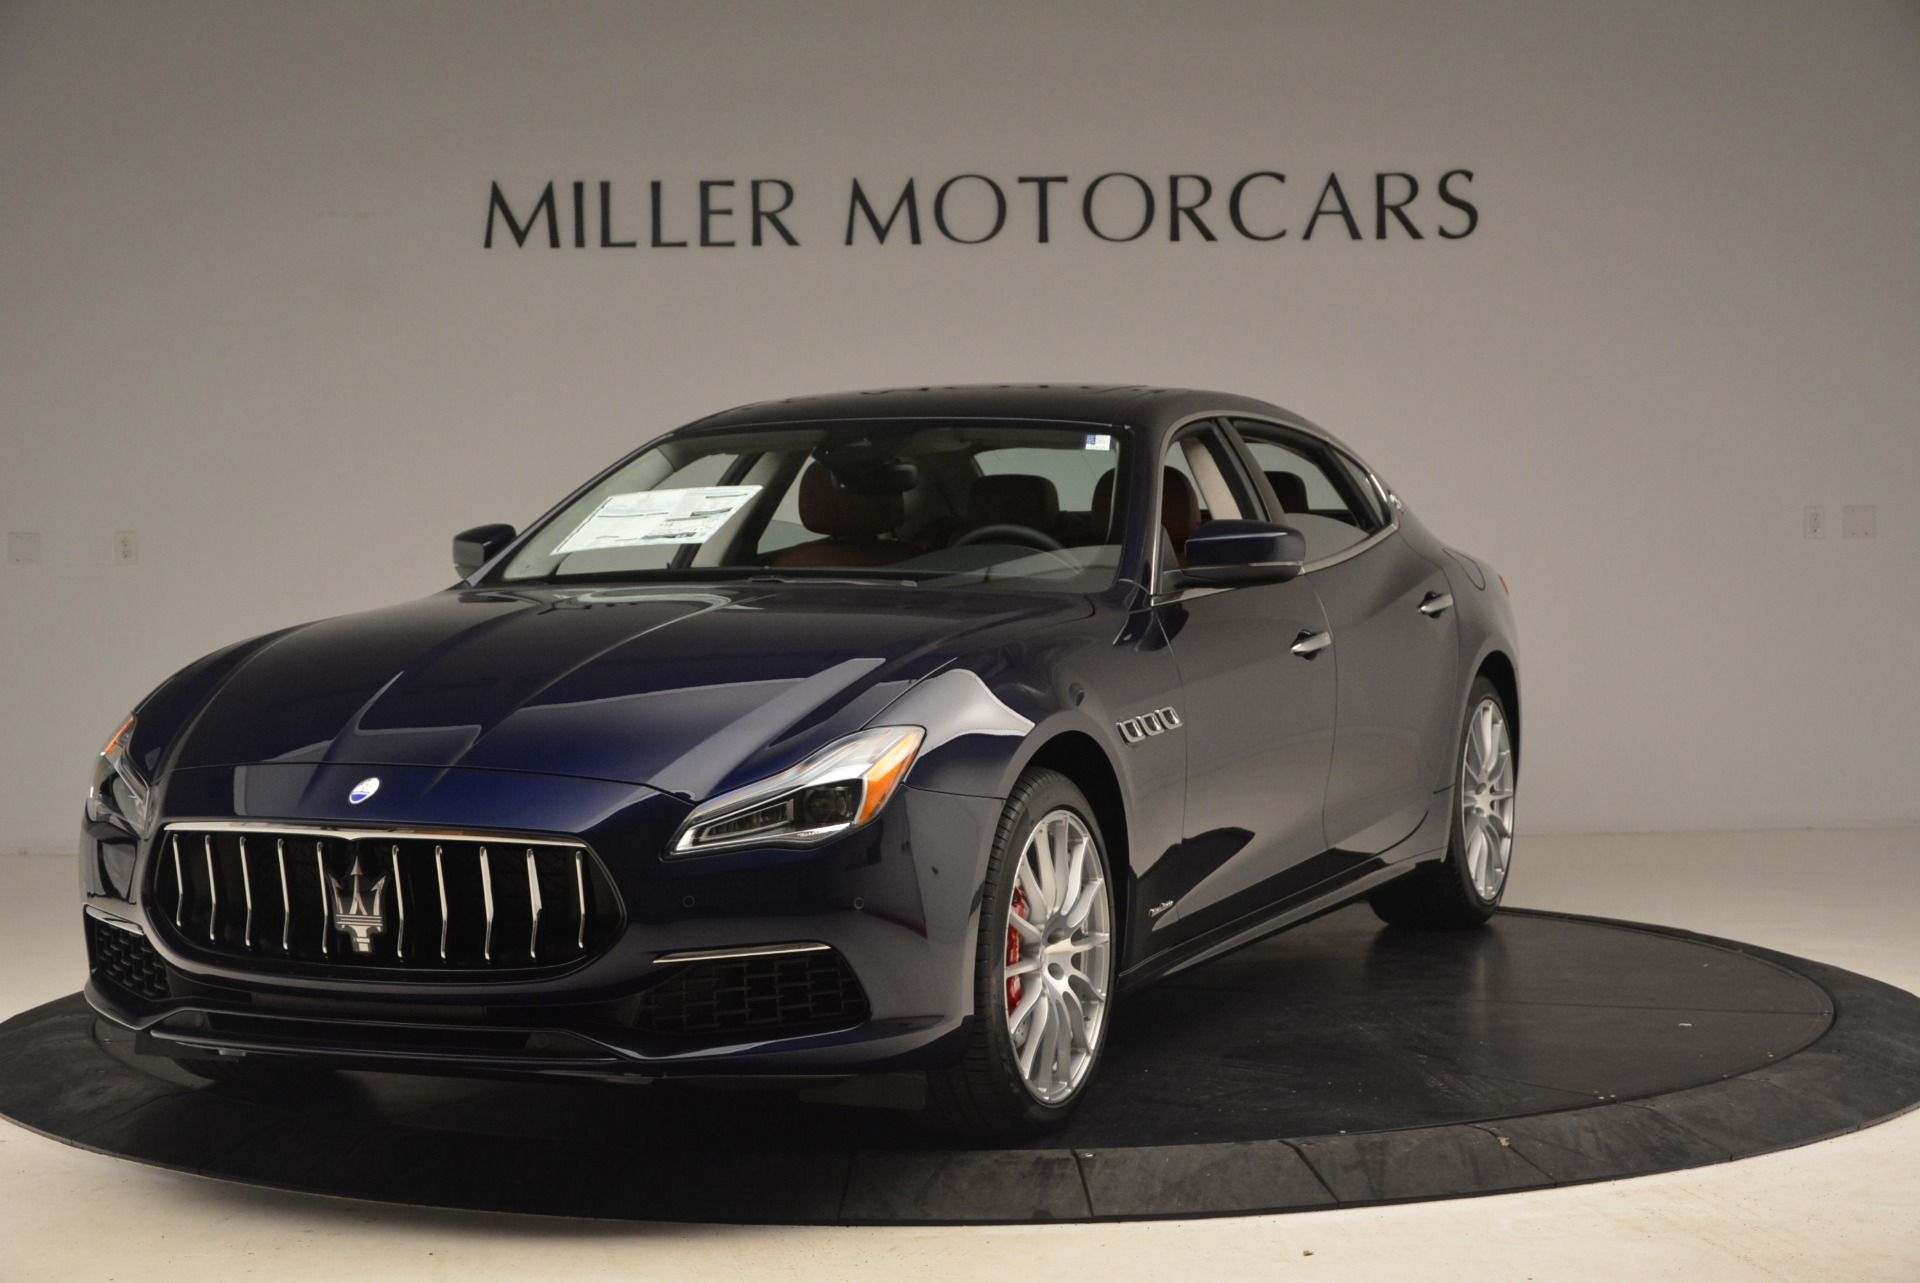 New 2019 Maserati Quattroporte S Q4 GranLusso For Sale In Greenwich, CT